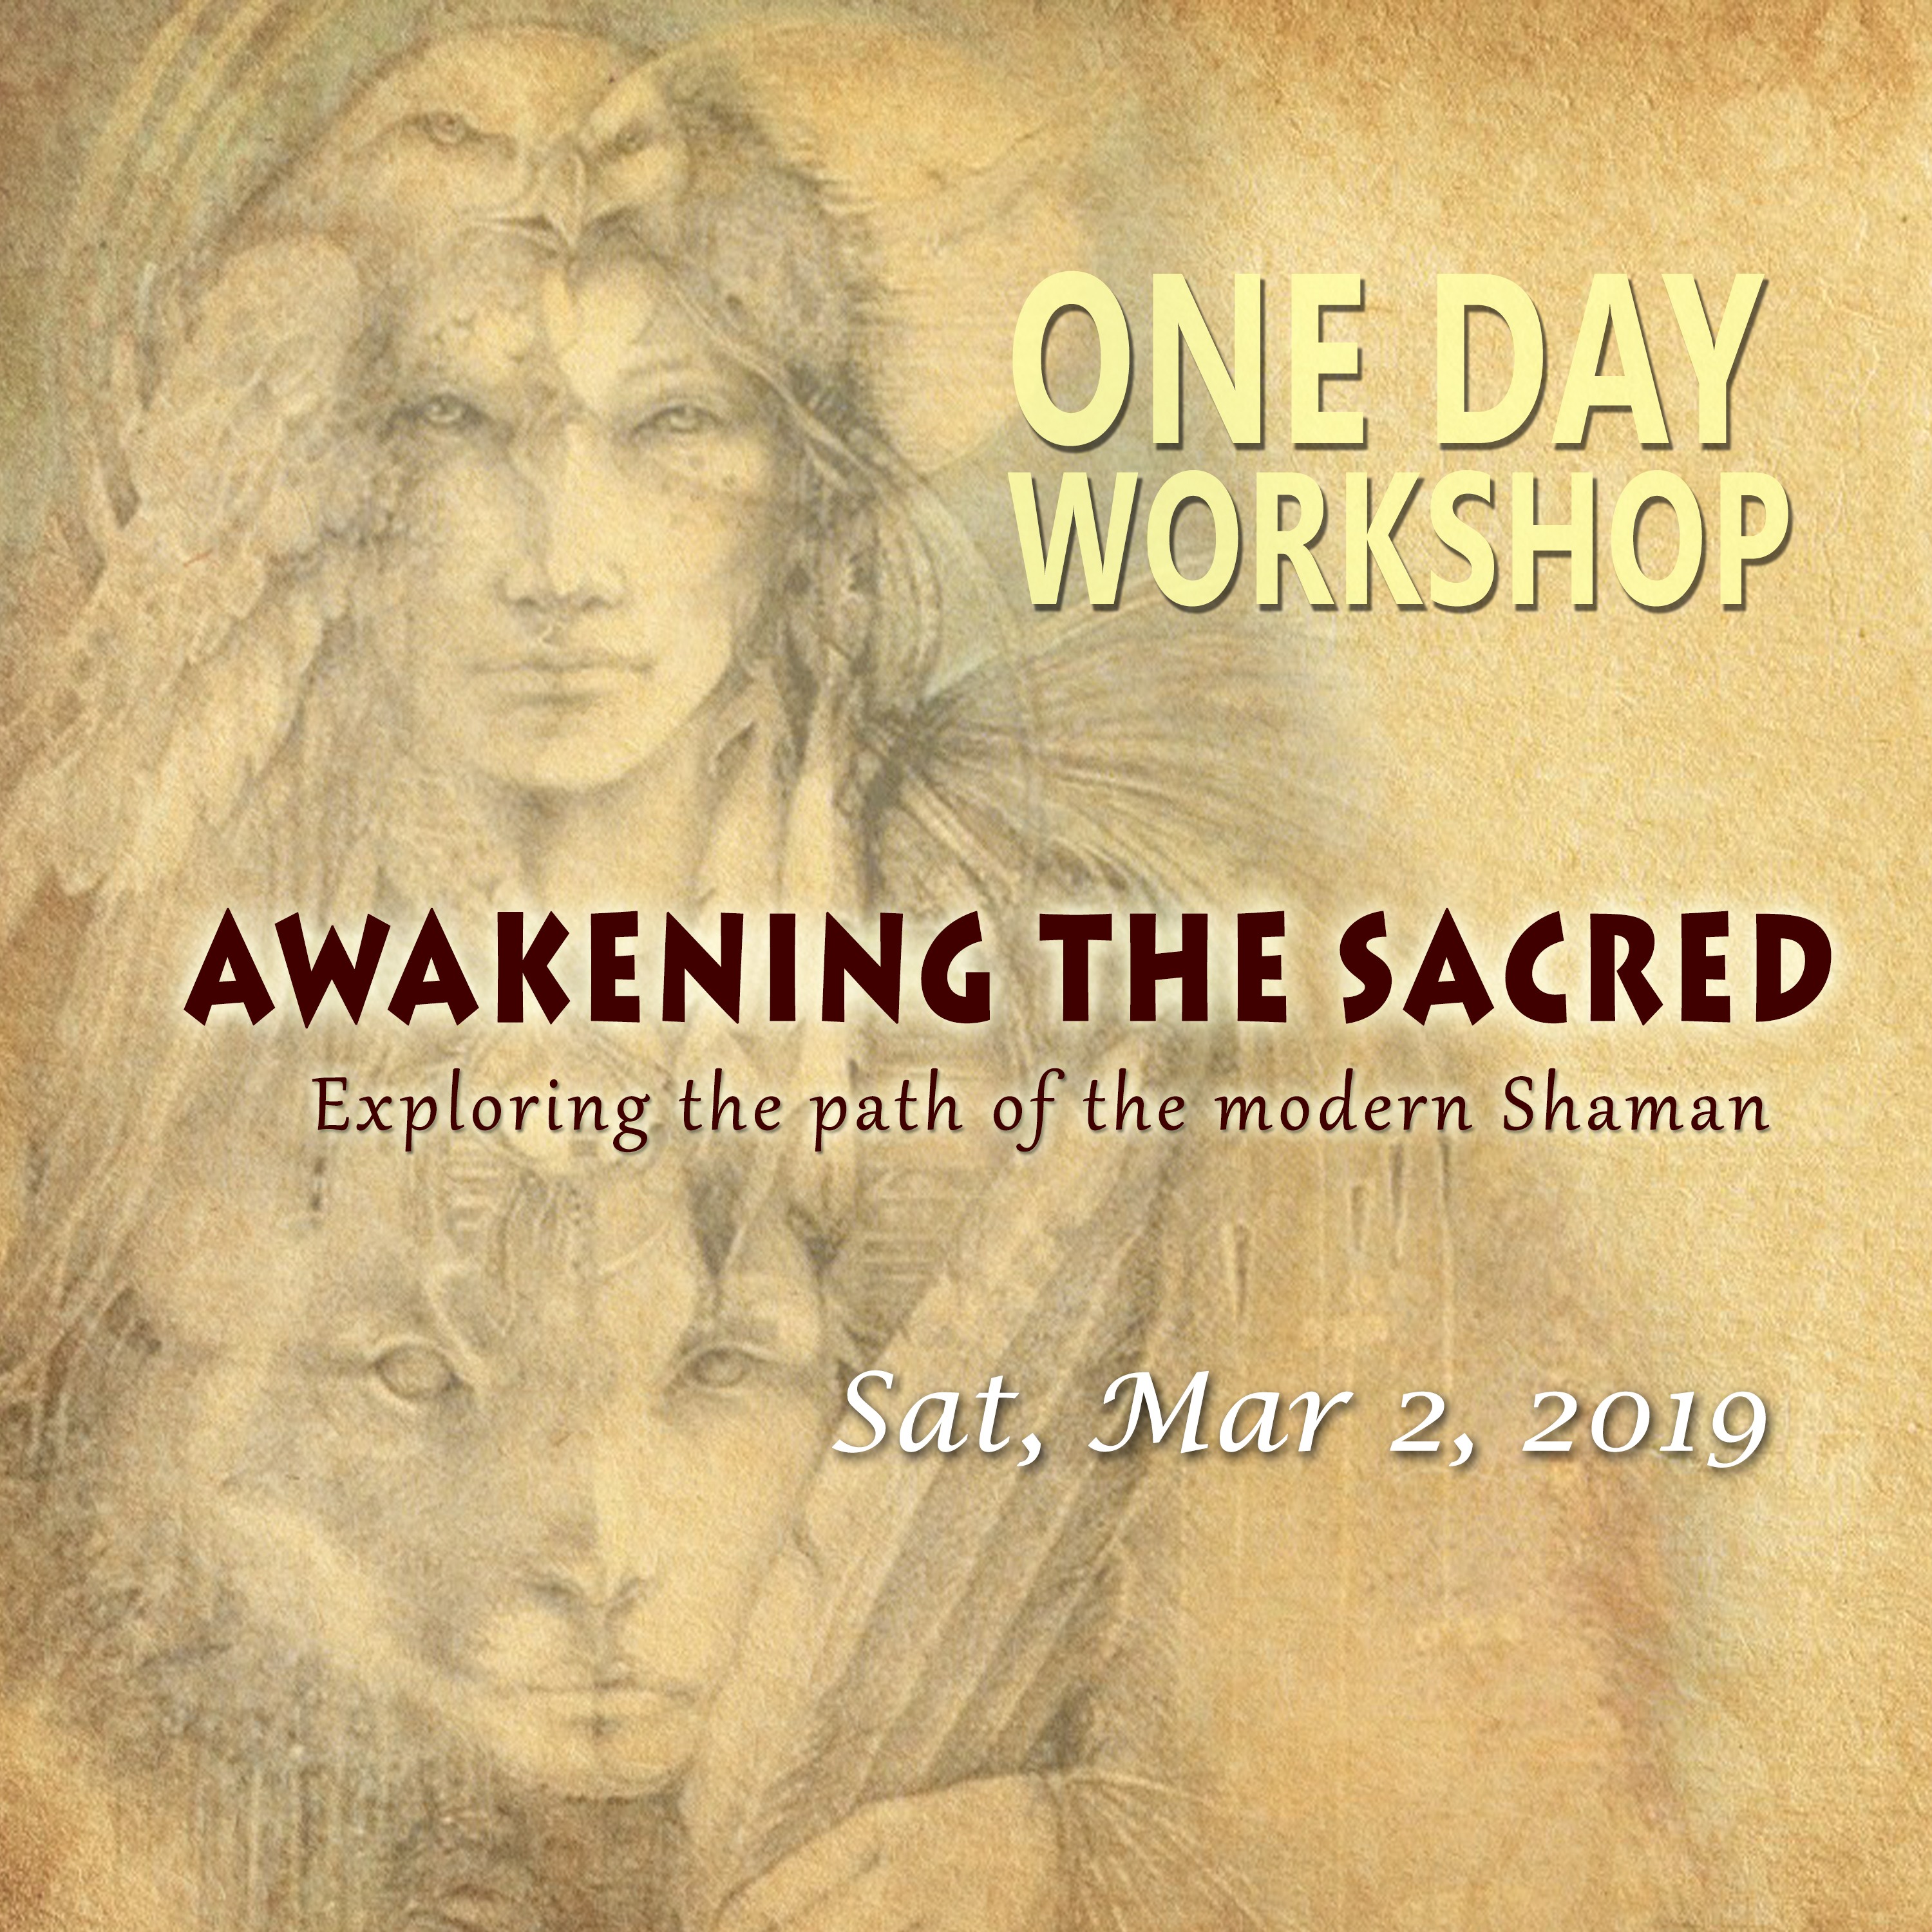 ONE-DAY WORKSHOP - Awakening the Sacred -A Path of the Modern Shaman